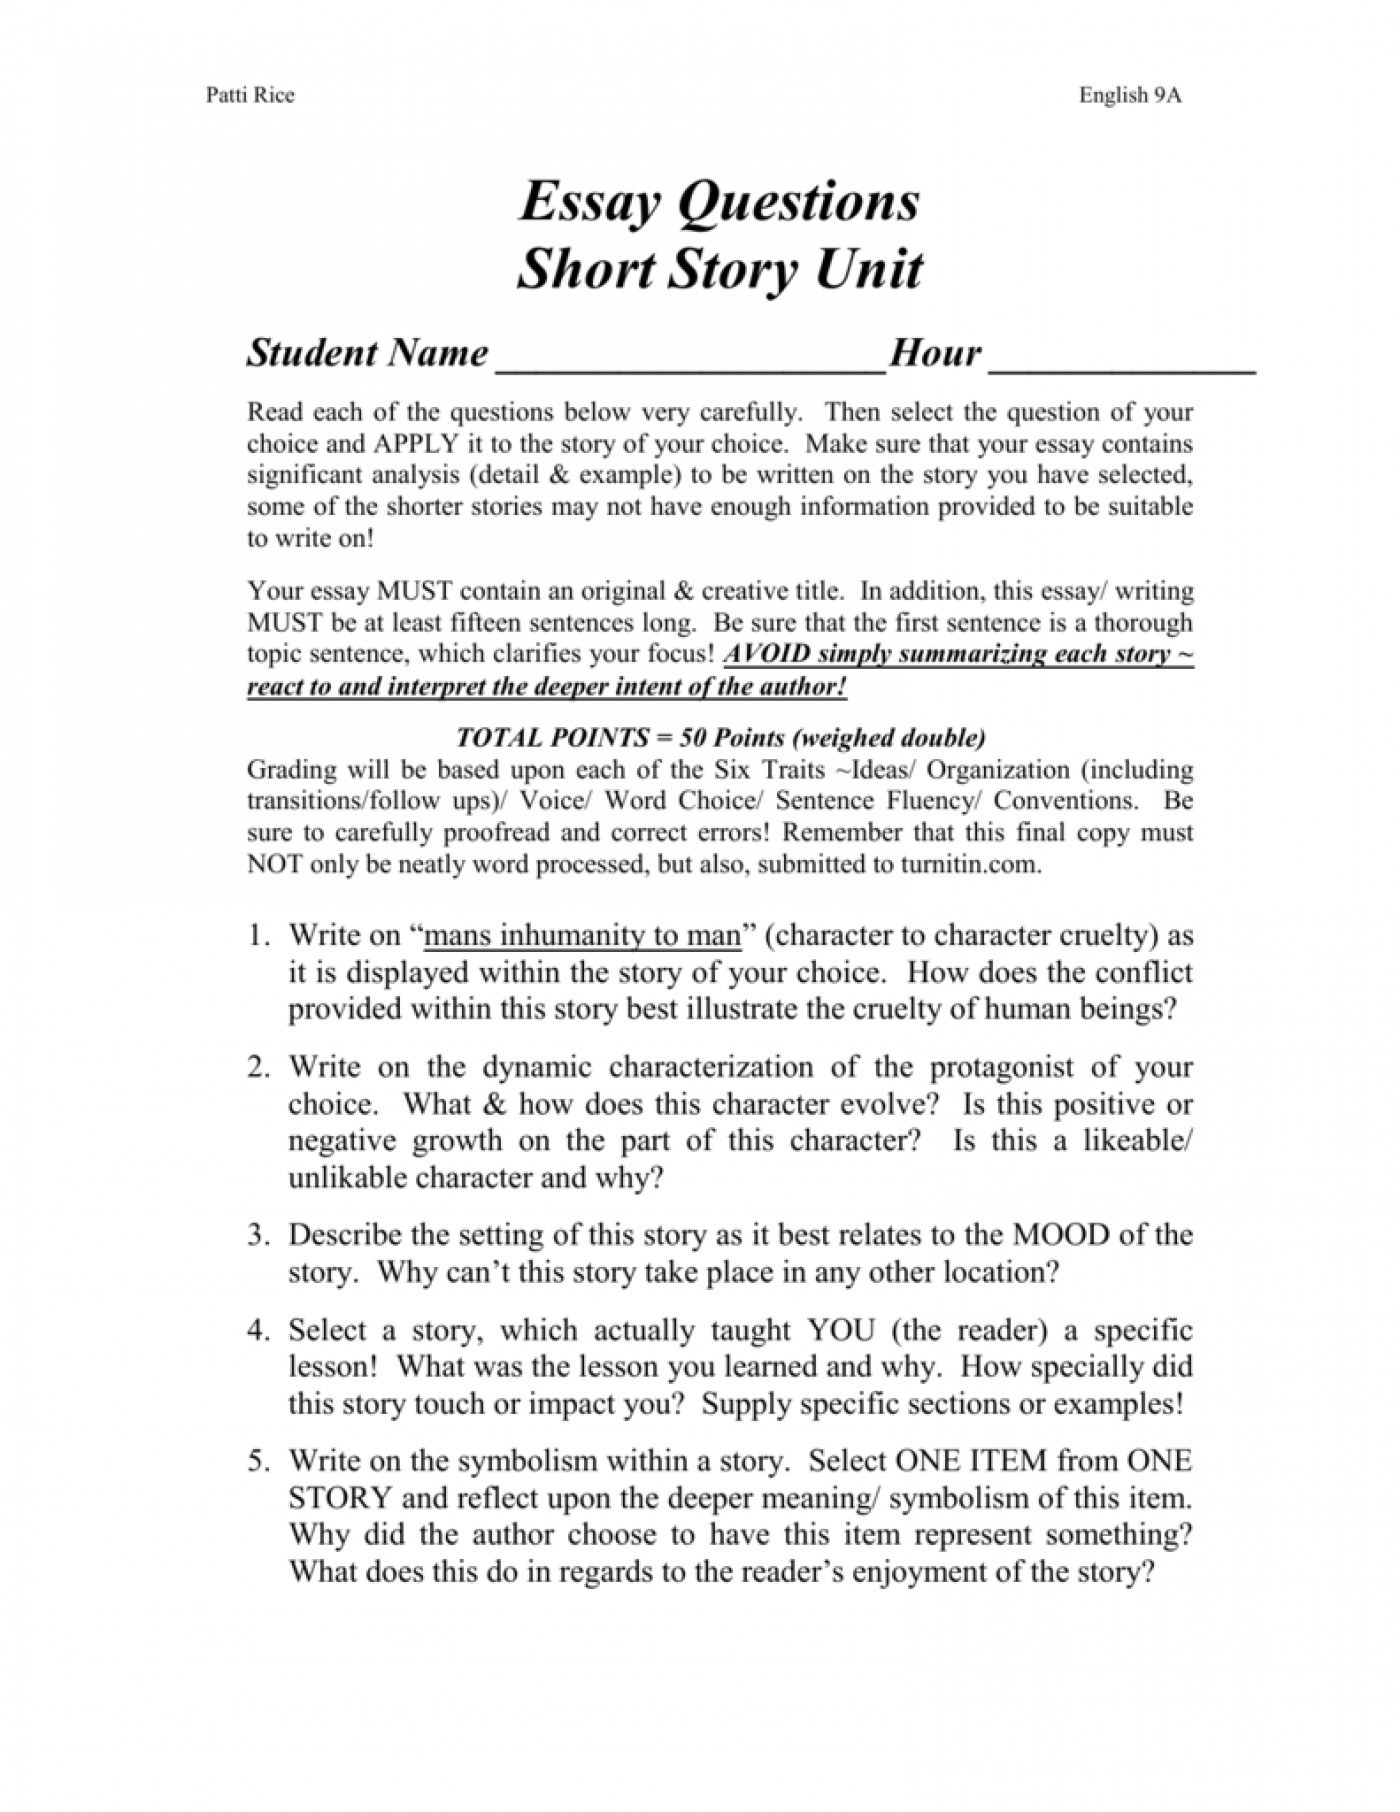 006 Short Story Essay Examples Example 008001643 1 Unforgettable Analysis Comparison 1400